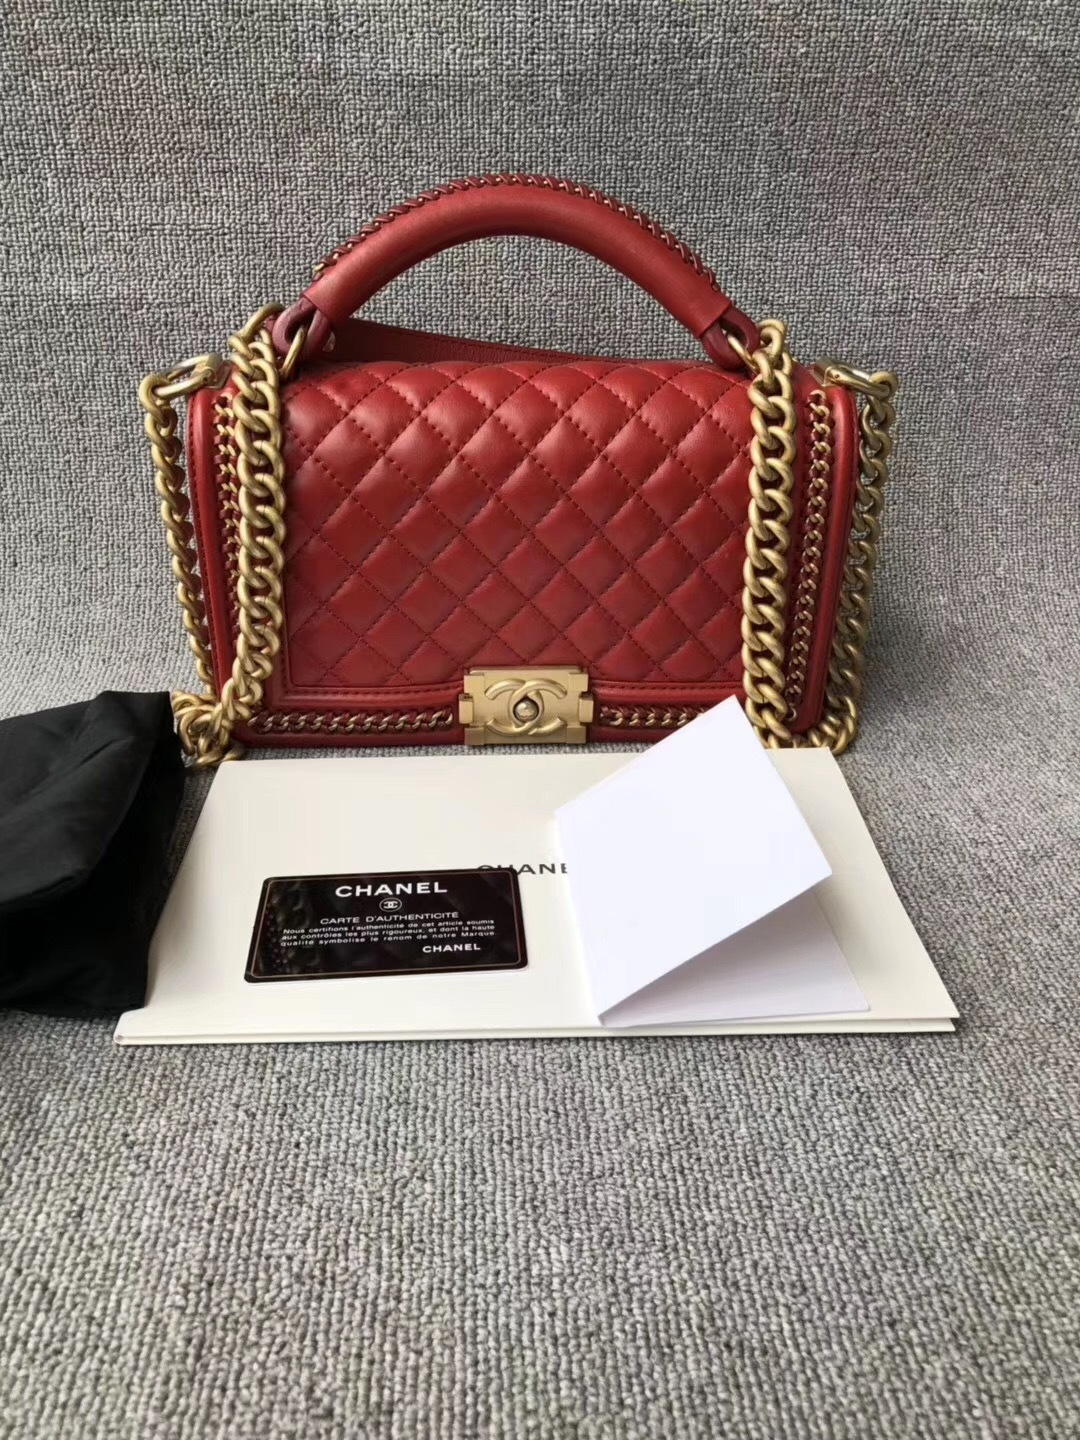 AUTHENTIC CHANEL RED QUILTED CALFSKIN 2 WAY TOP HANDLE BOY FLAP BAG RECEIPT